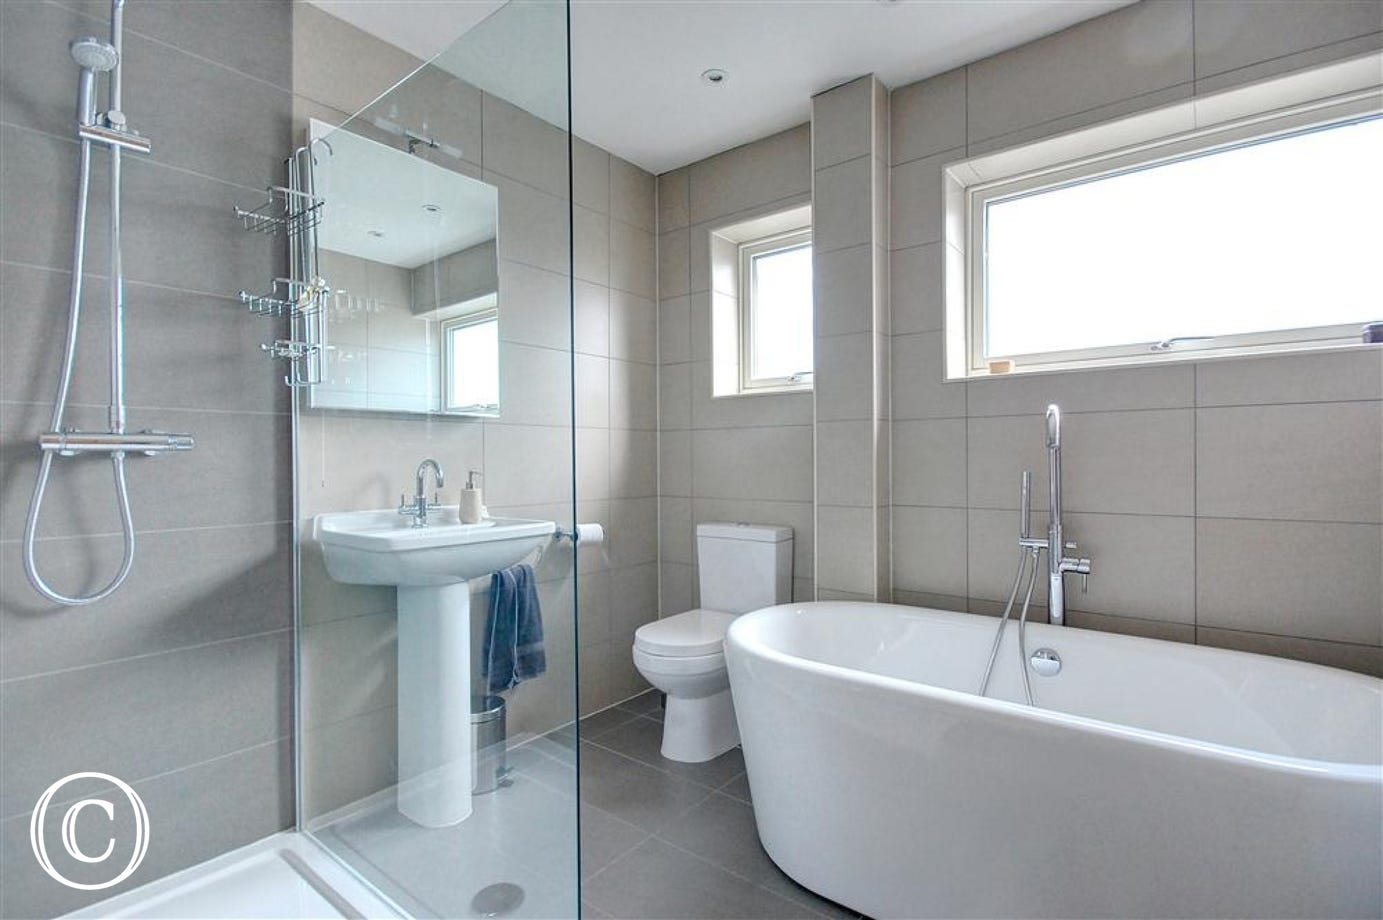 This modern fresh bathroom with roll top bath and biscuit coloured tiles is sure to help you relax.